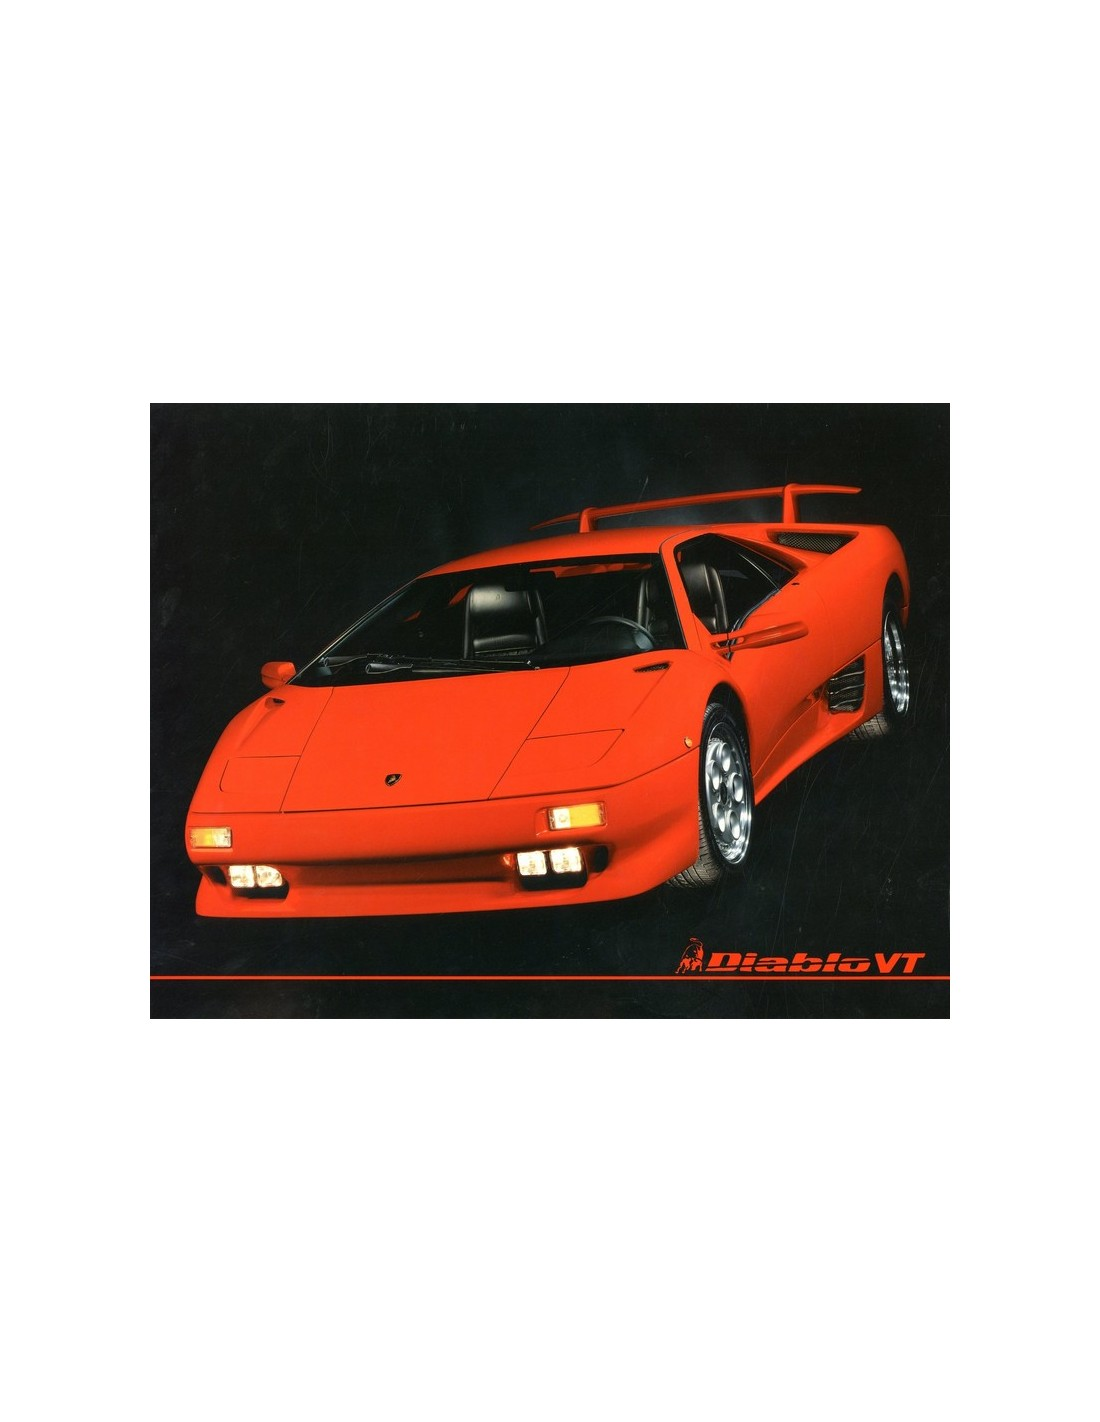 https://www.autolit.eu/7047-thickbox_default/1993-lamborghini-diablo-vt-leaflet-english.jpg